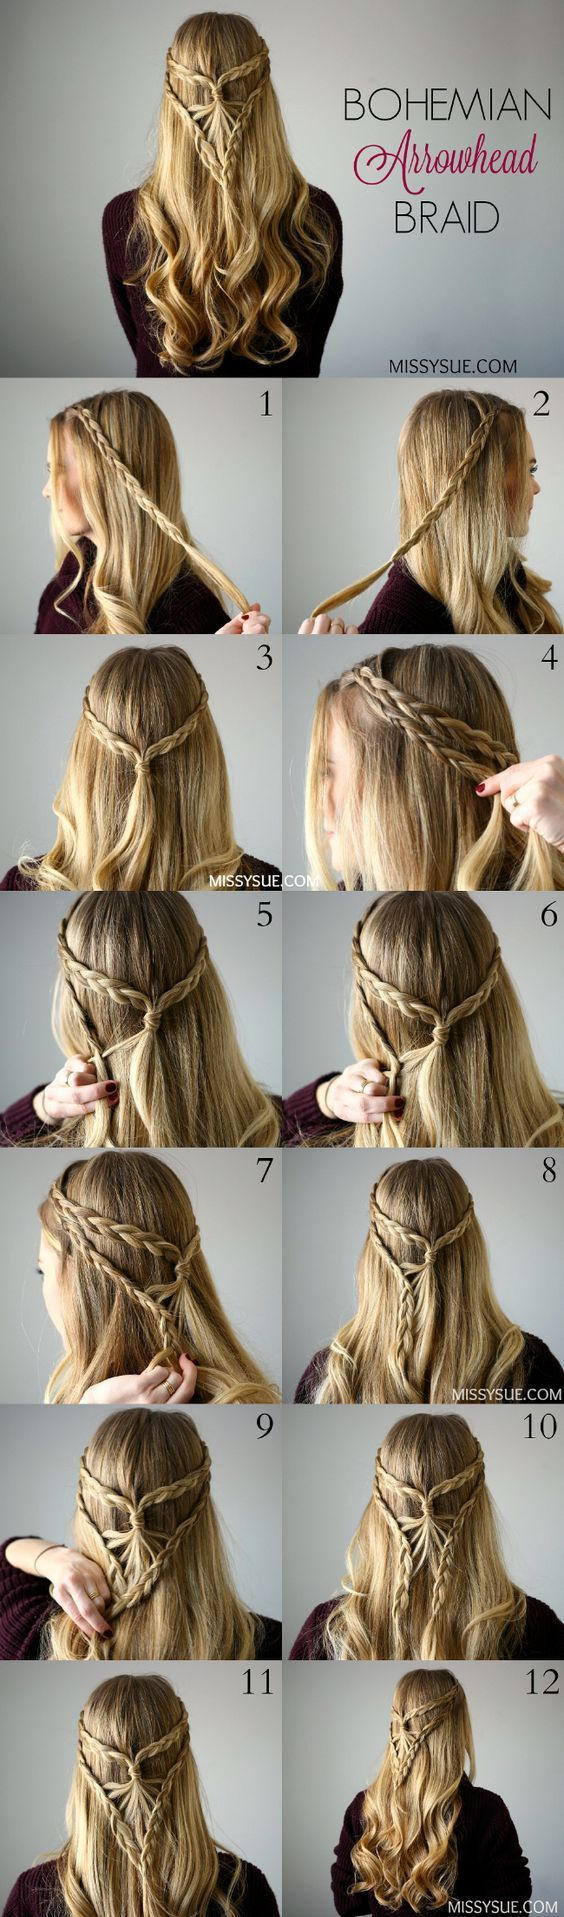 easy braided hairstyle tutorials that anyone can master